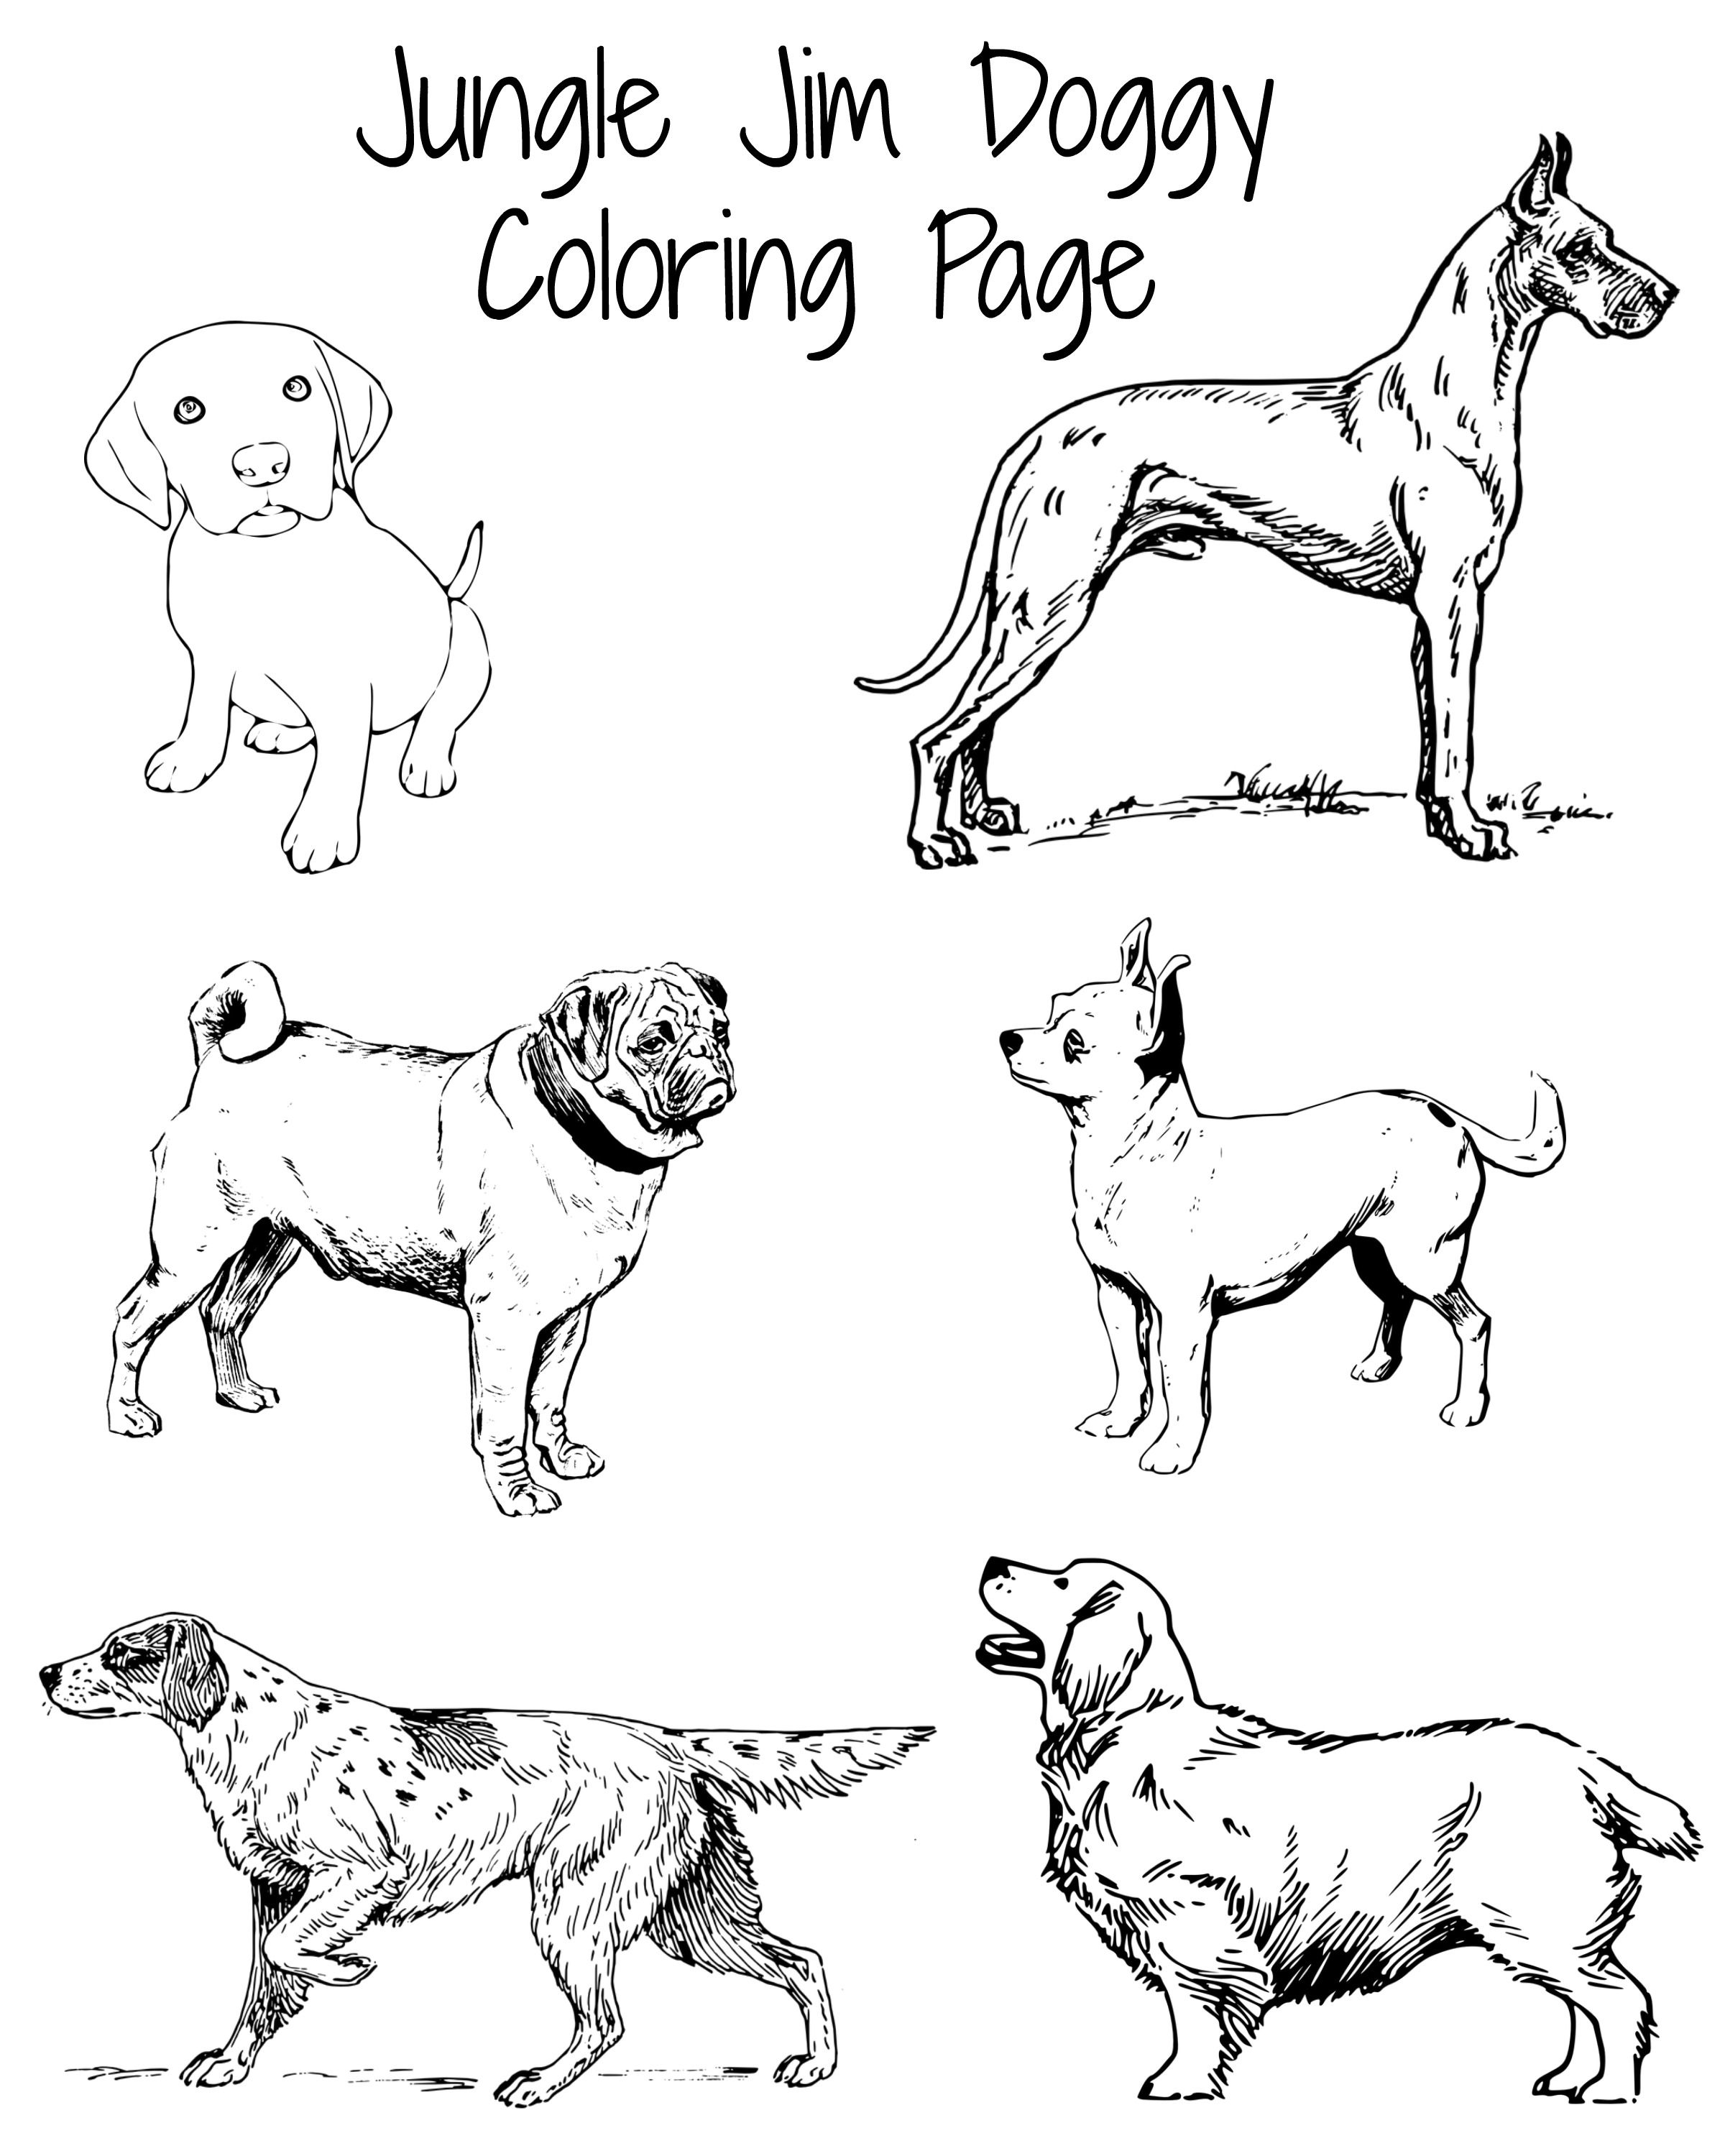 Doggy Coloring Page Perfect For The Dog Days Of Summer Need Activities For The Kids This